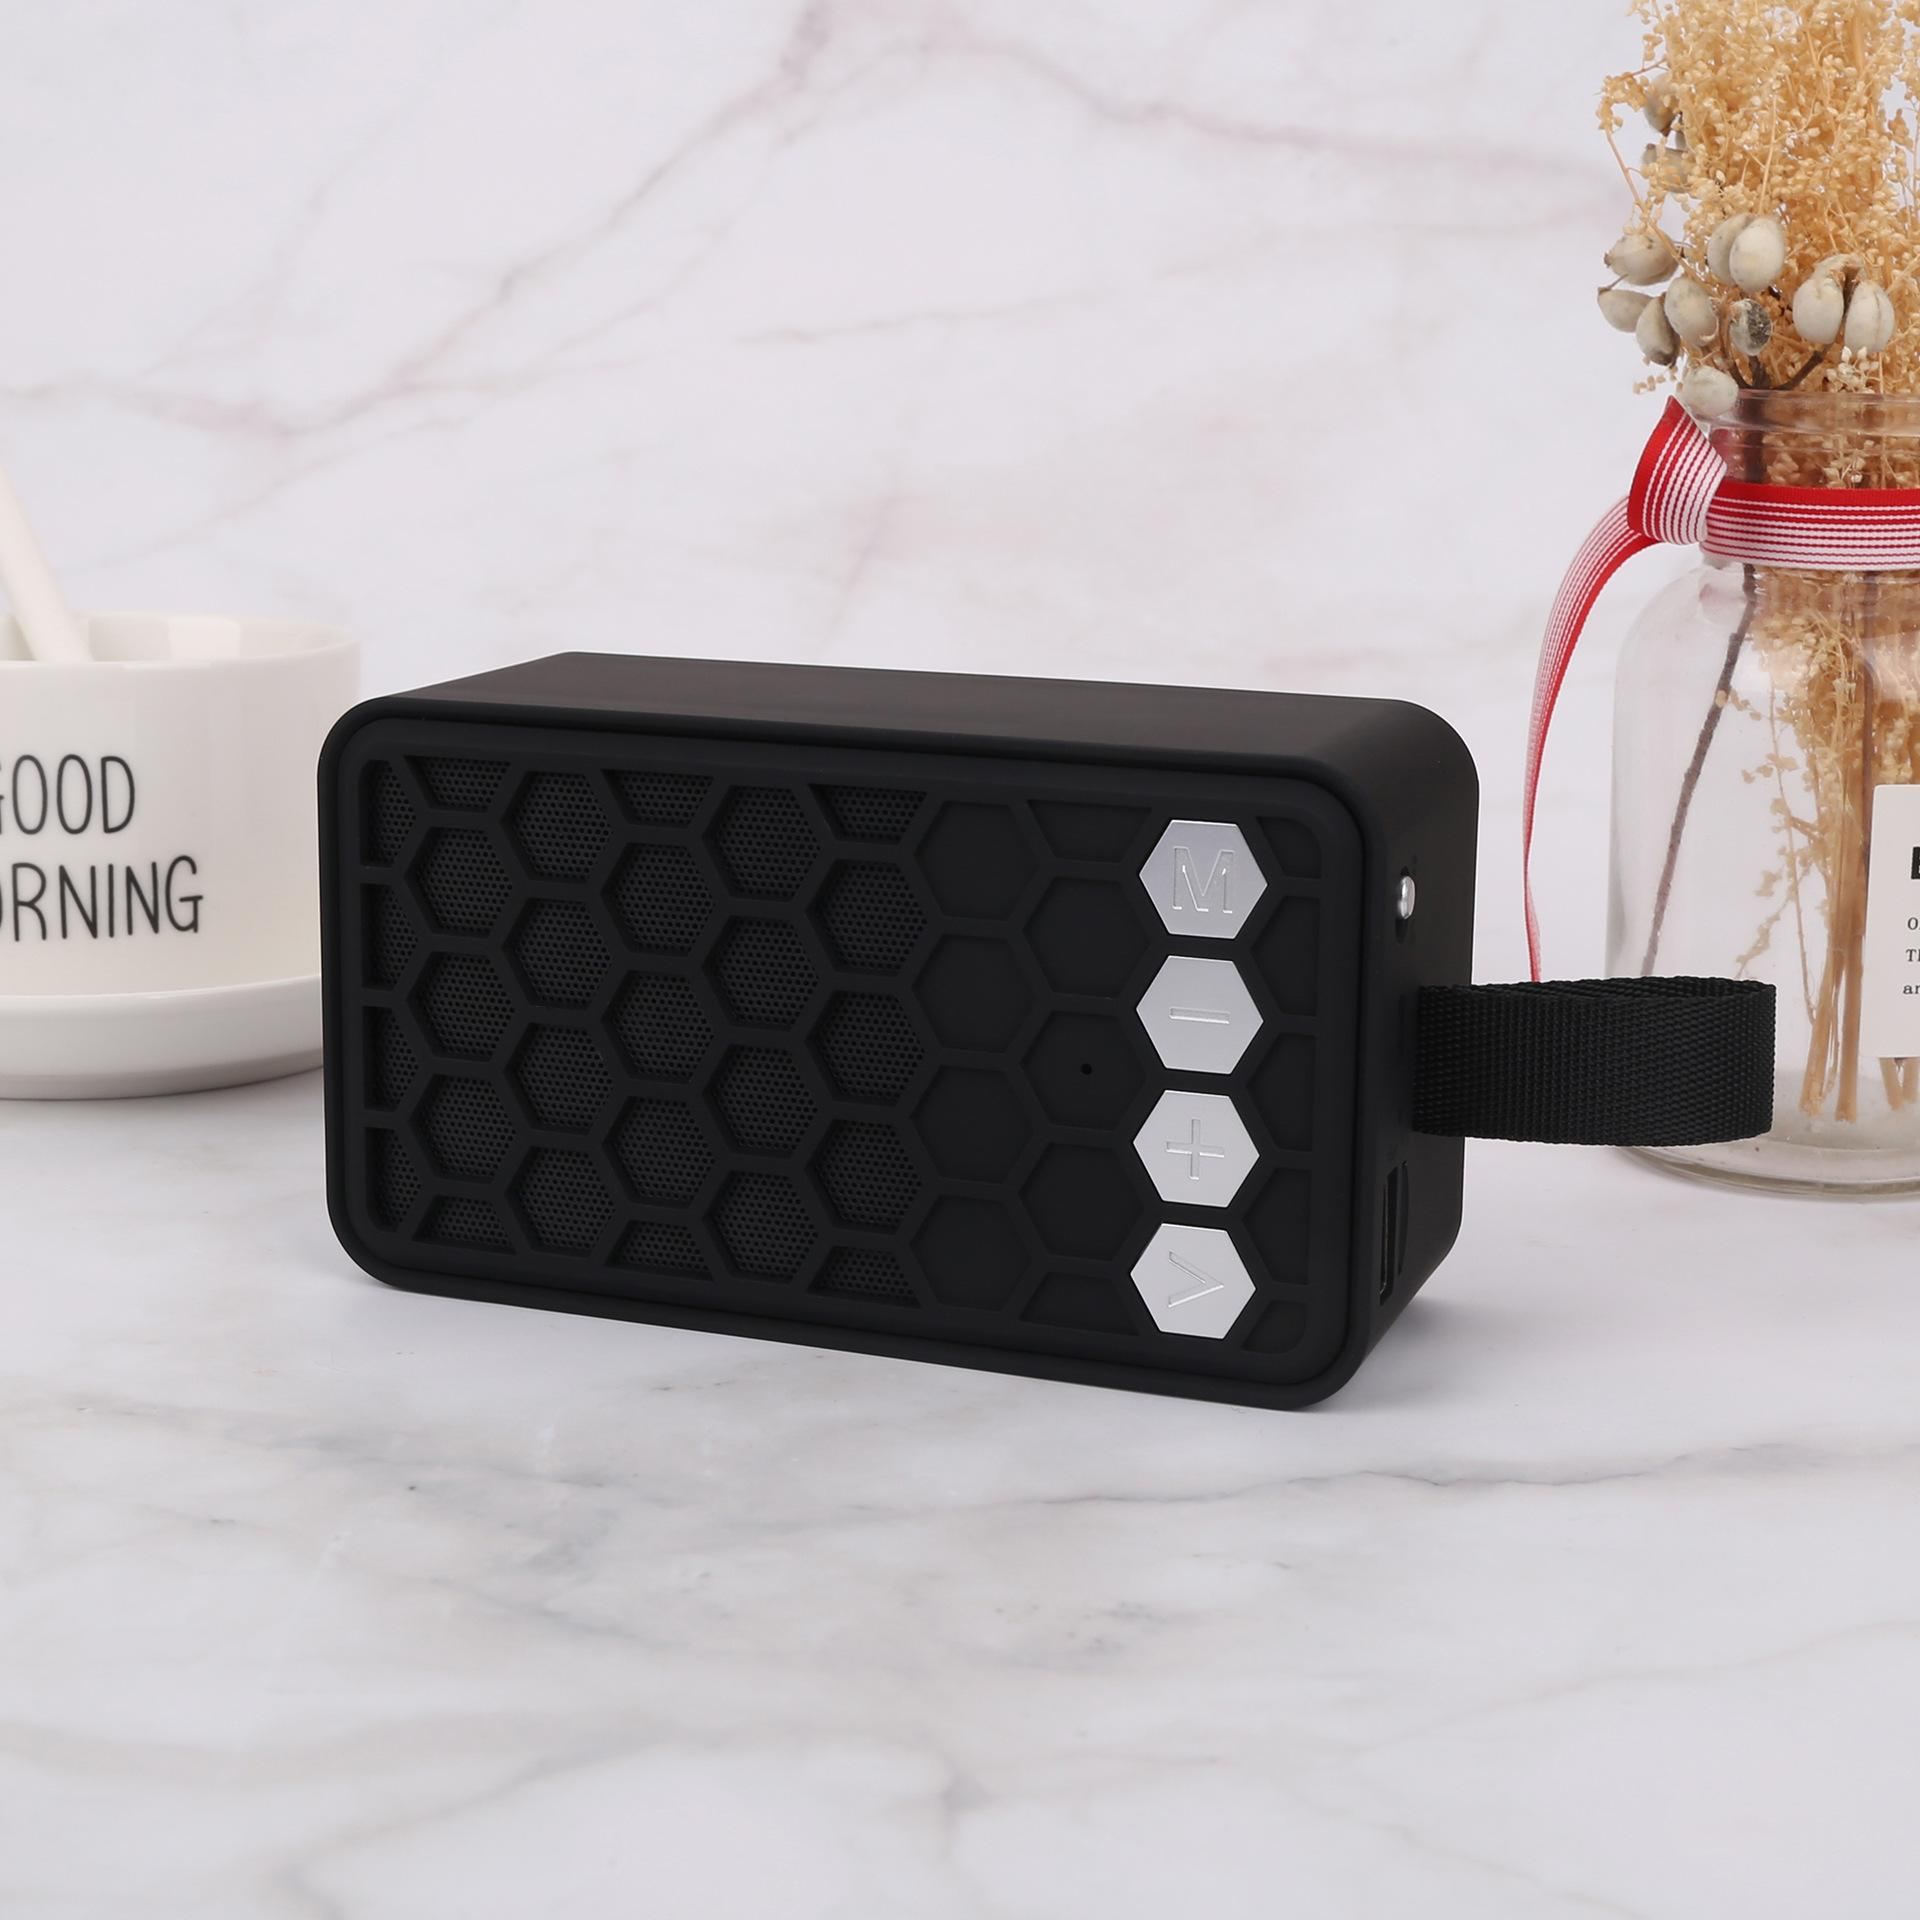 Bluetooth 5.0 Mini Wireless Speaker HDY-G12 Portable Stereo Speakers Handsfree for iPhone Android Phone Xiaomi TF USB Music Player FM